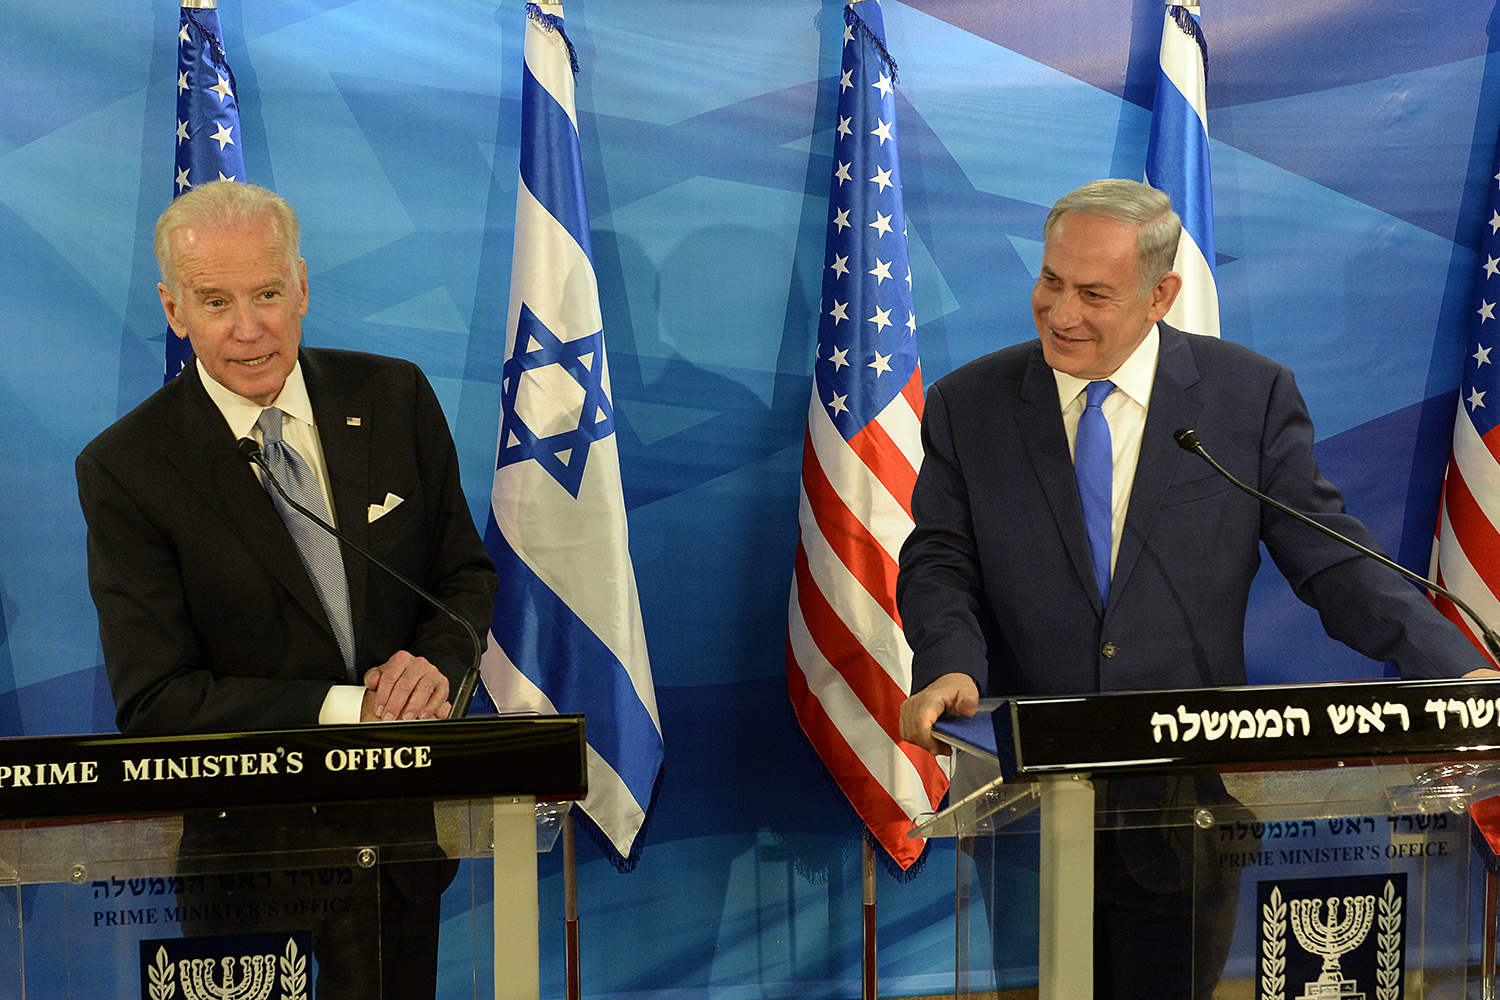 Then-Vice President Joe Biden, left, and Prime Minister Benjamin Netanyahu, in 2016